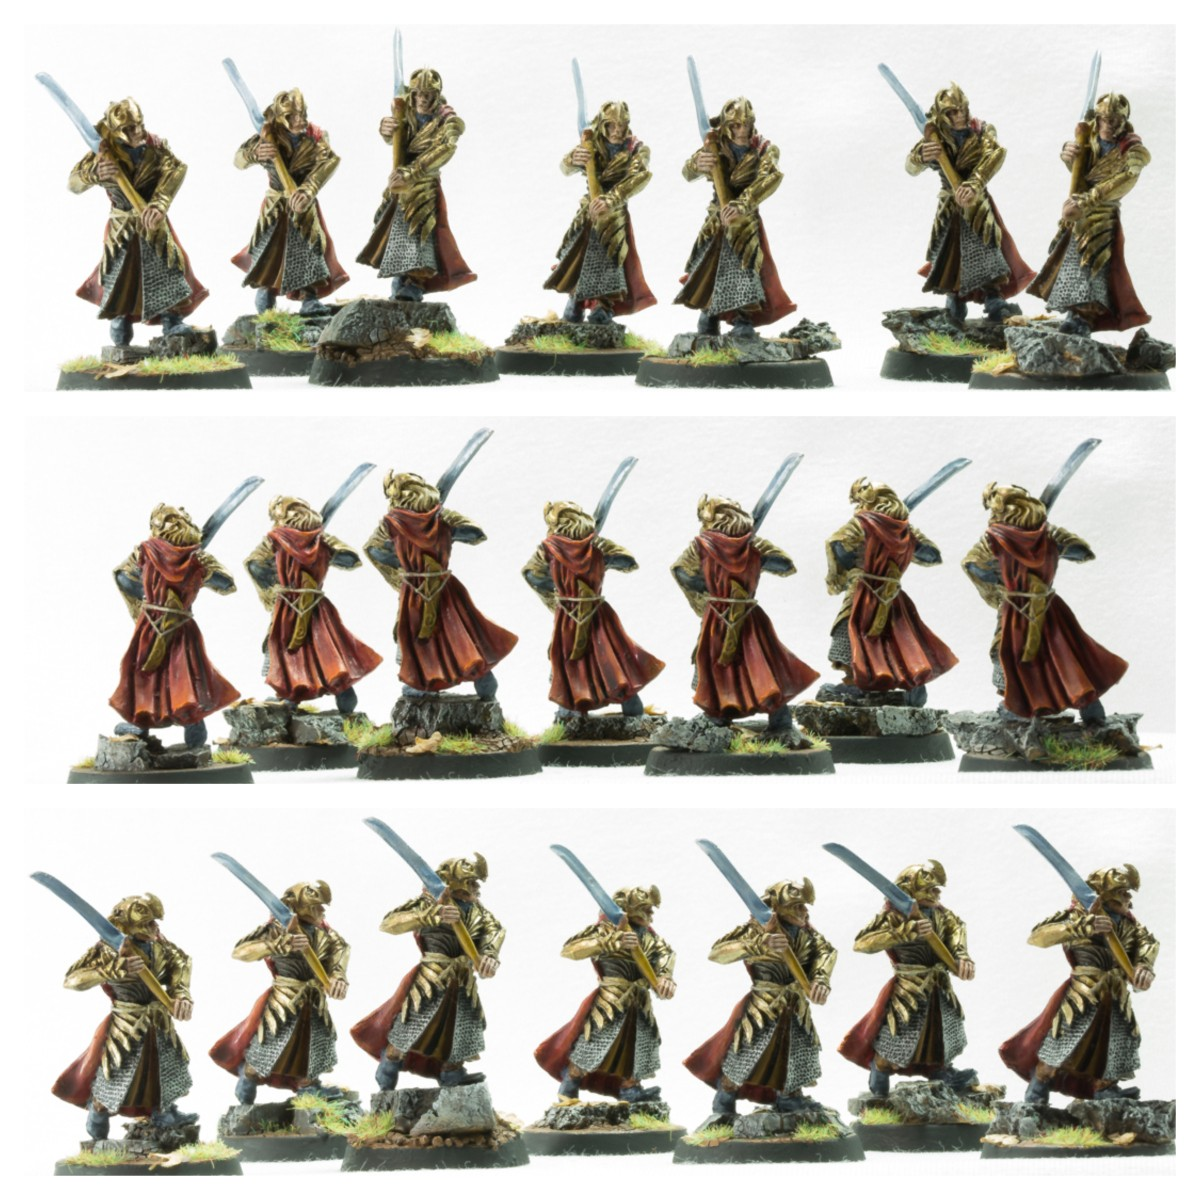 Galadhrim warriors, Haldir's Elves